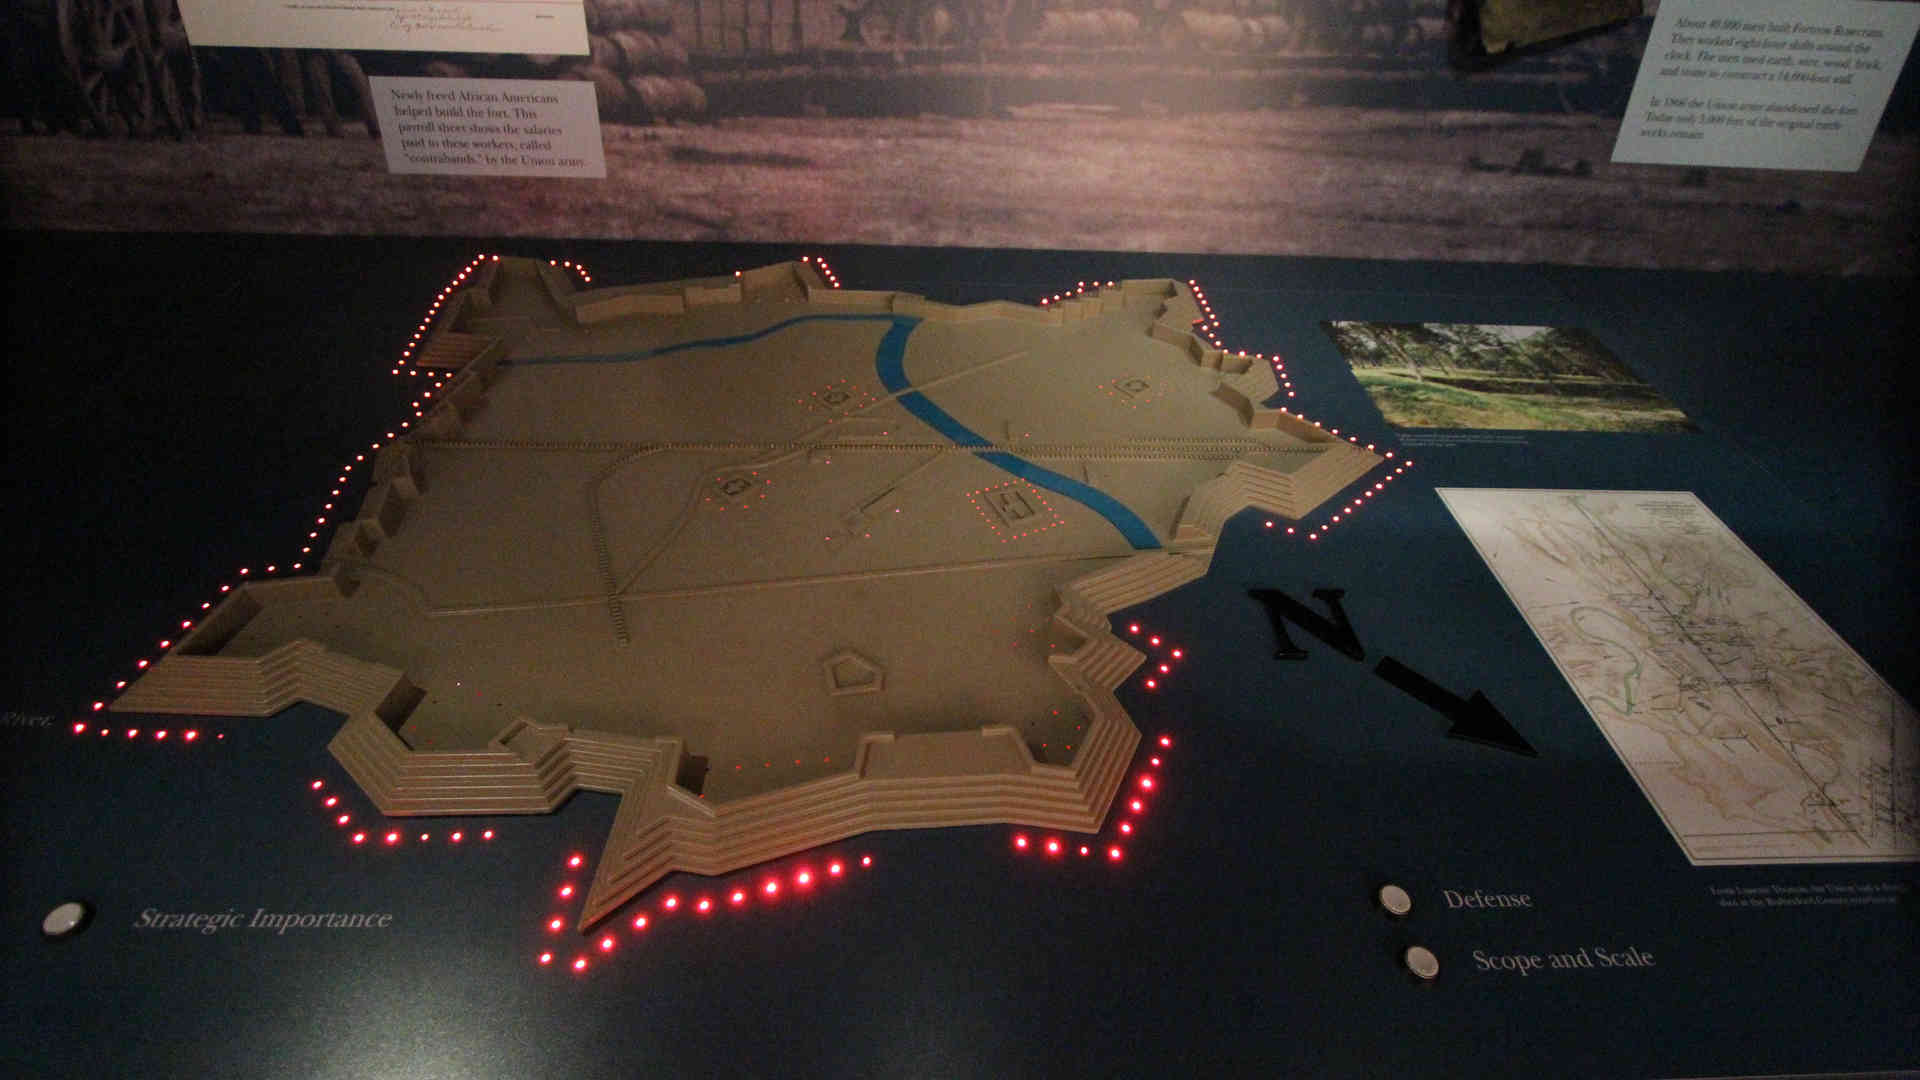 stones river national battlefield visitor center and headquarters exhibit interactive